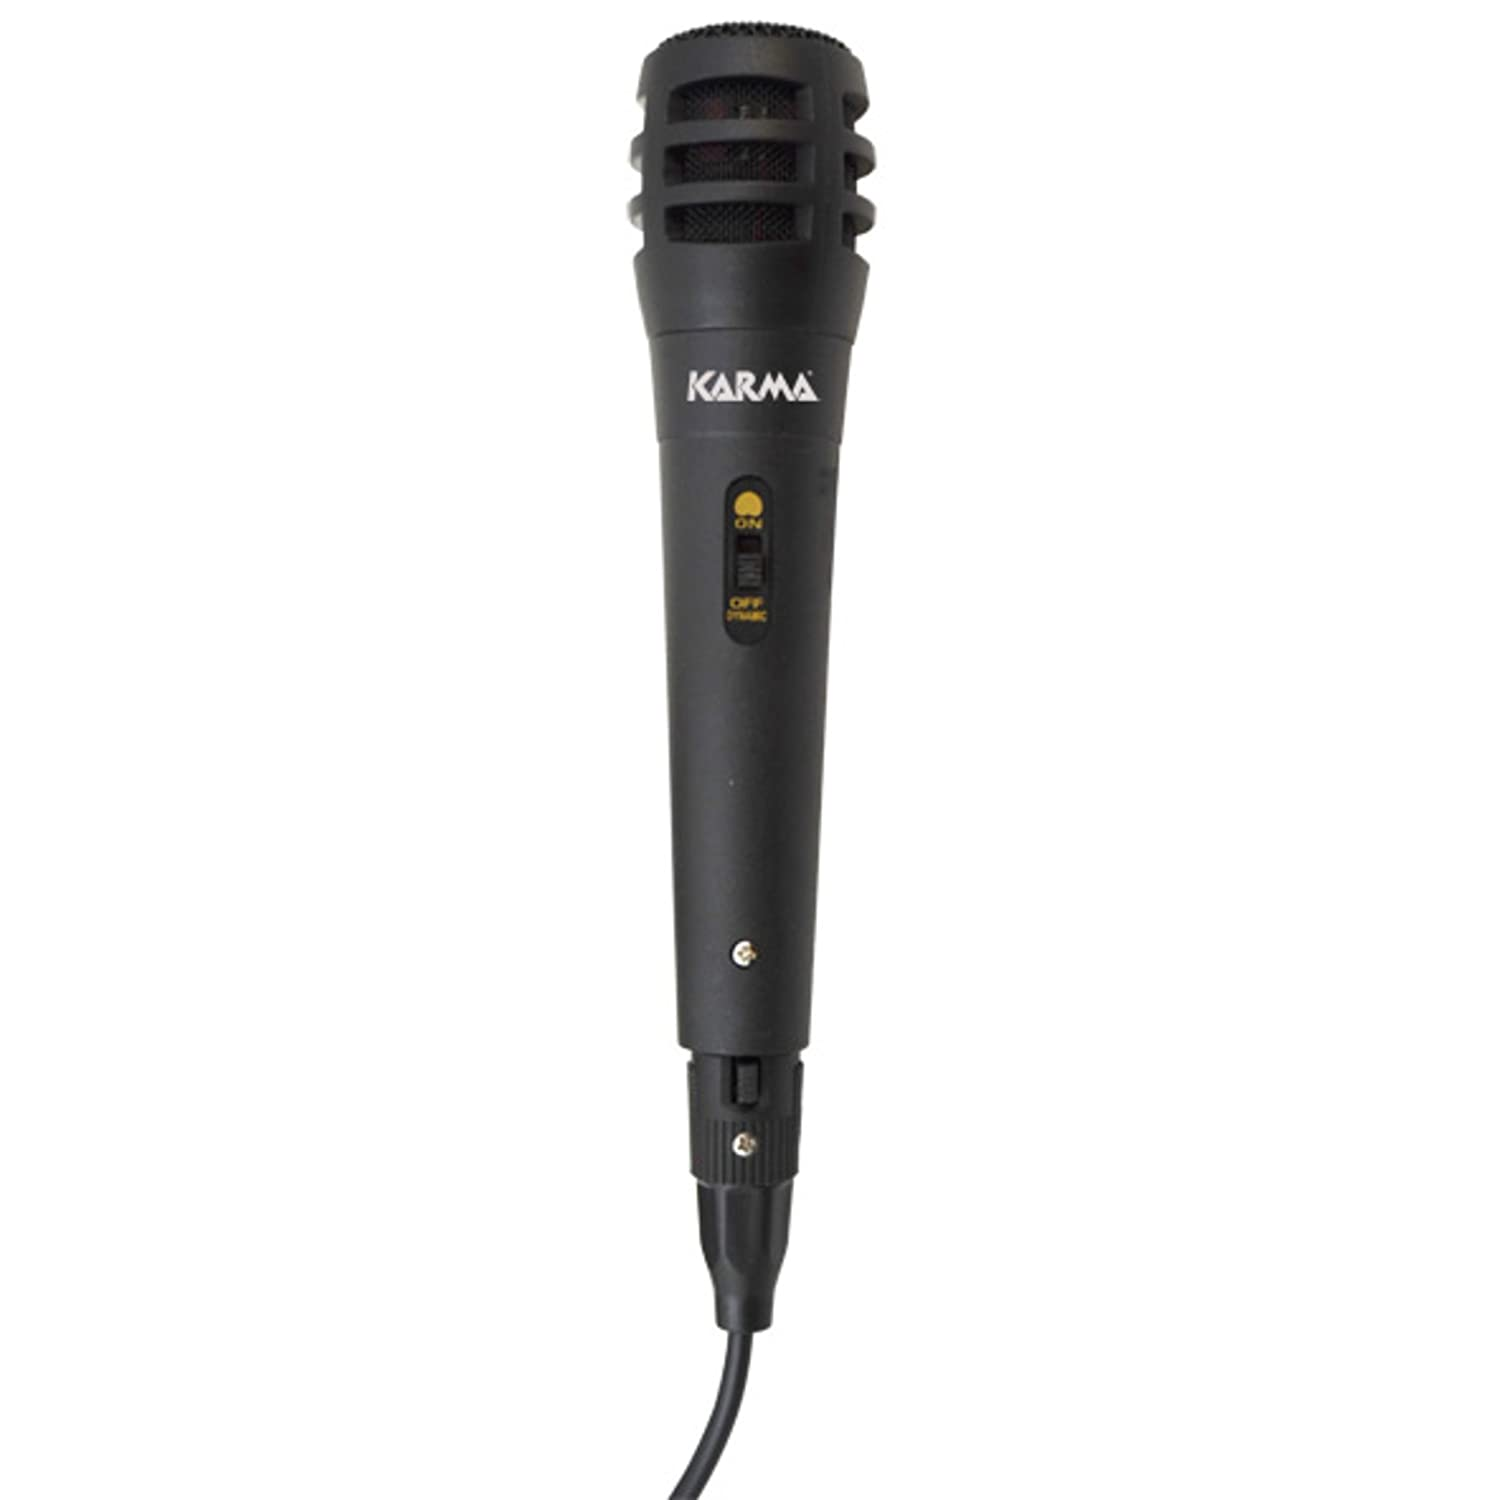 Karma Italiana DM 520 Wired Black microphone - Microphones (72 dB, 90-11000 Hz, 630 Ω, Wired, 3 m, 1 pc(s)) 630 Ω